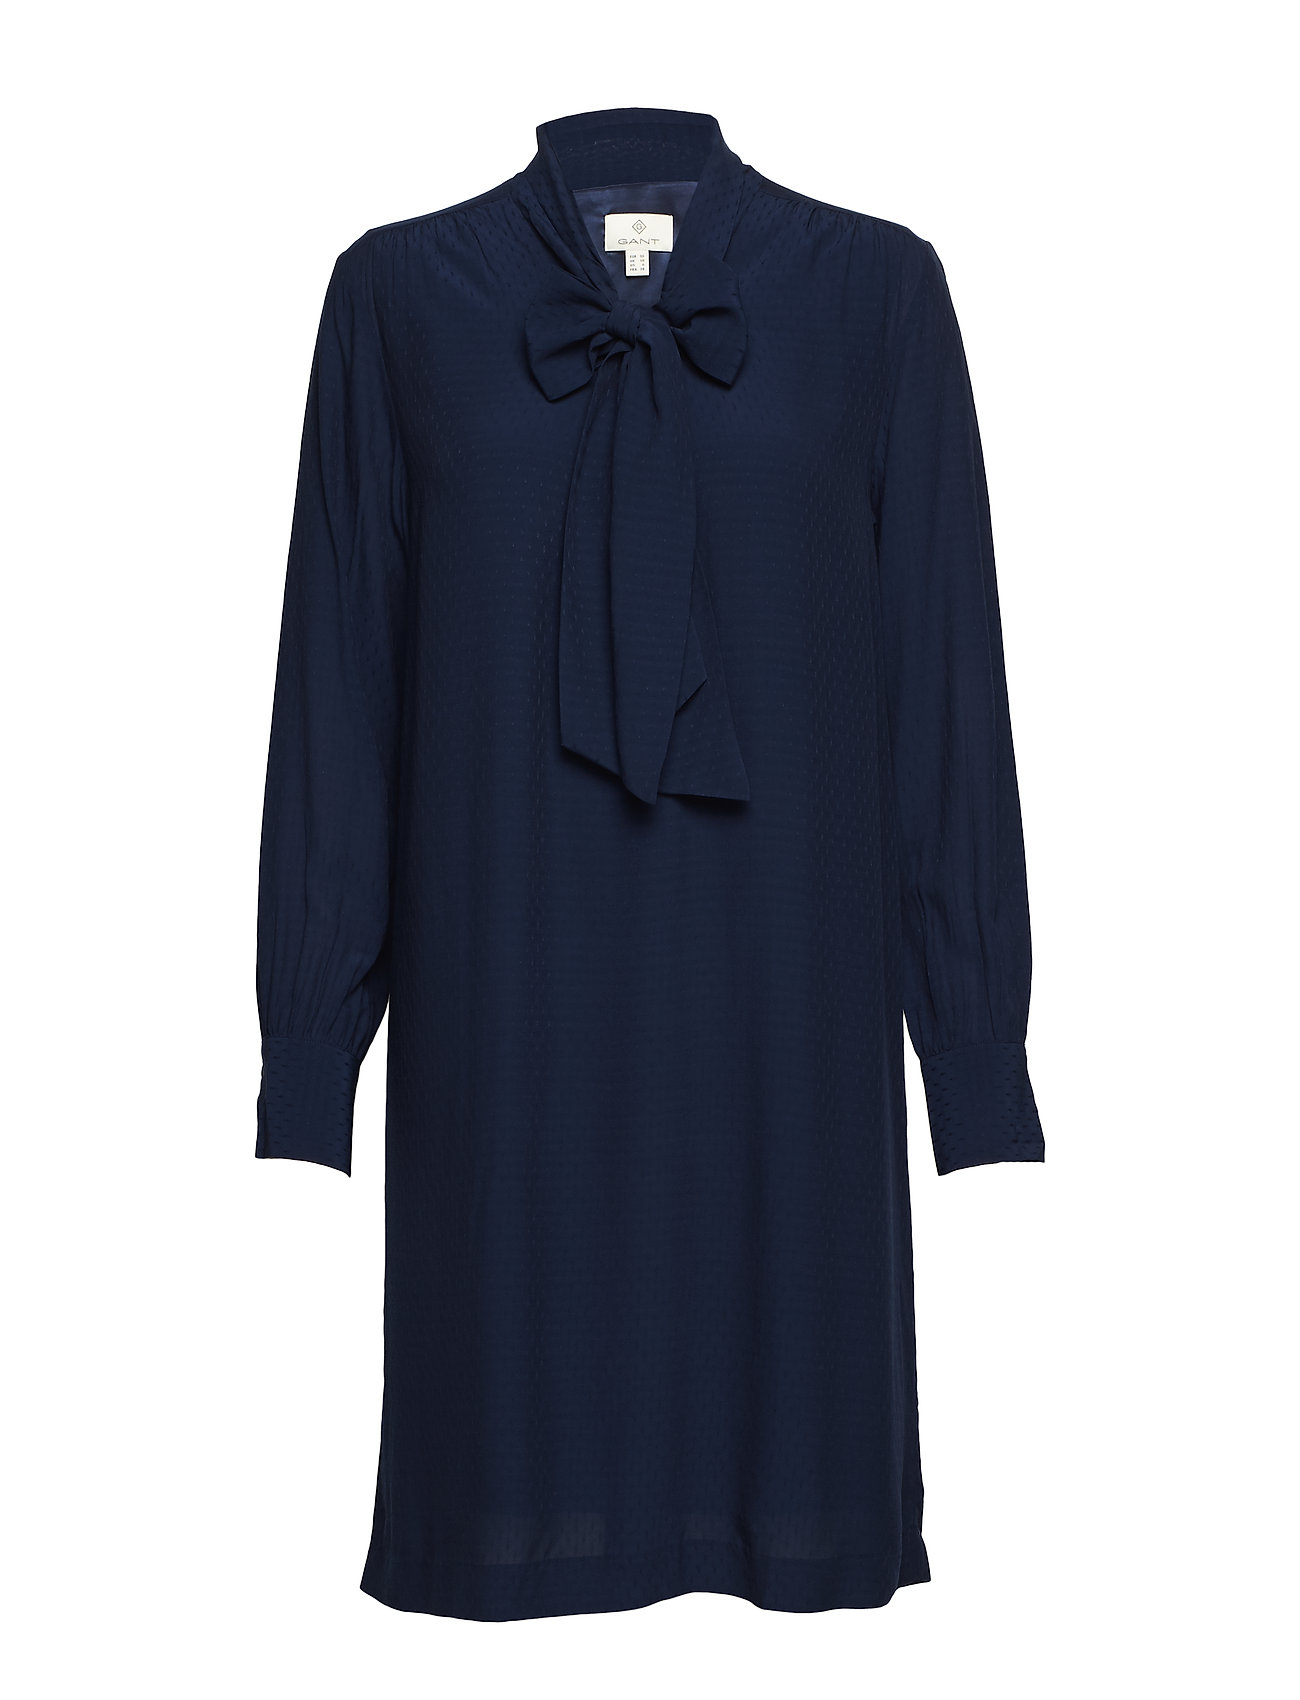 GANT G3. DOBBY BOW DRESS - MARINE